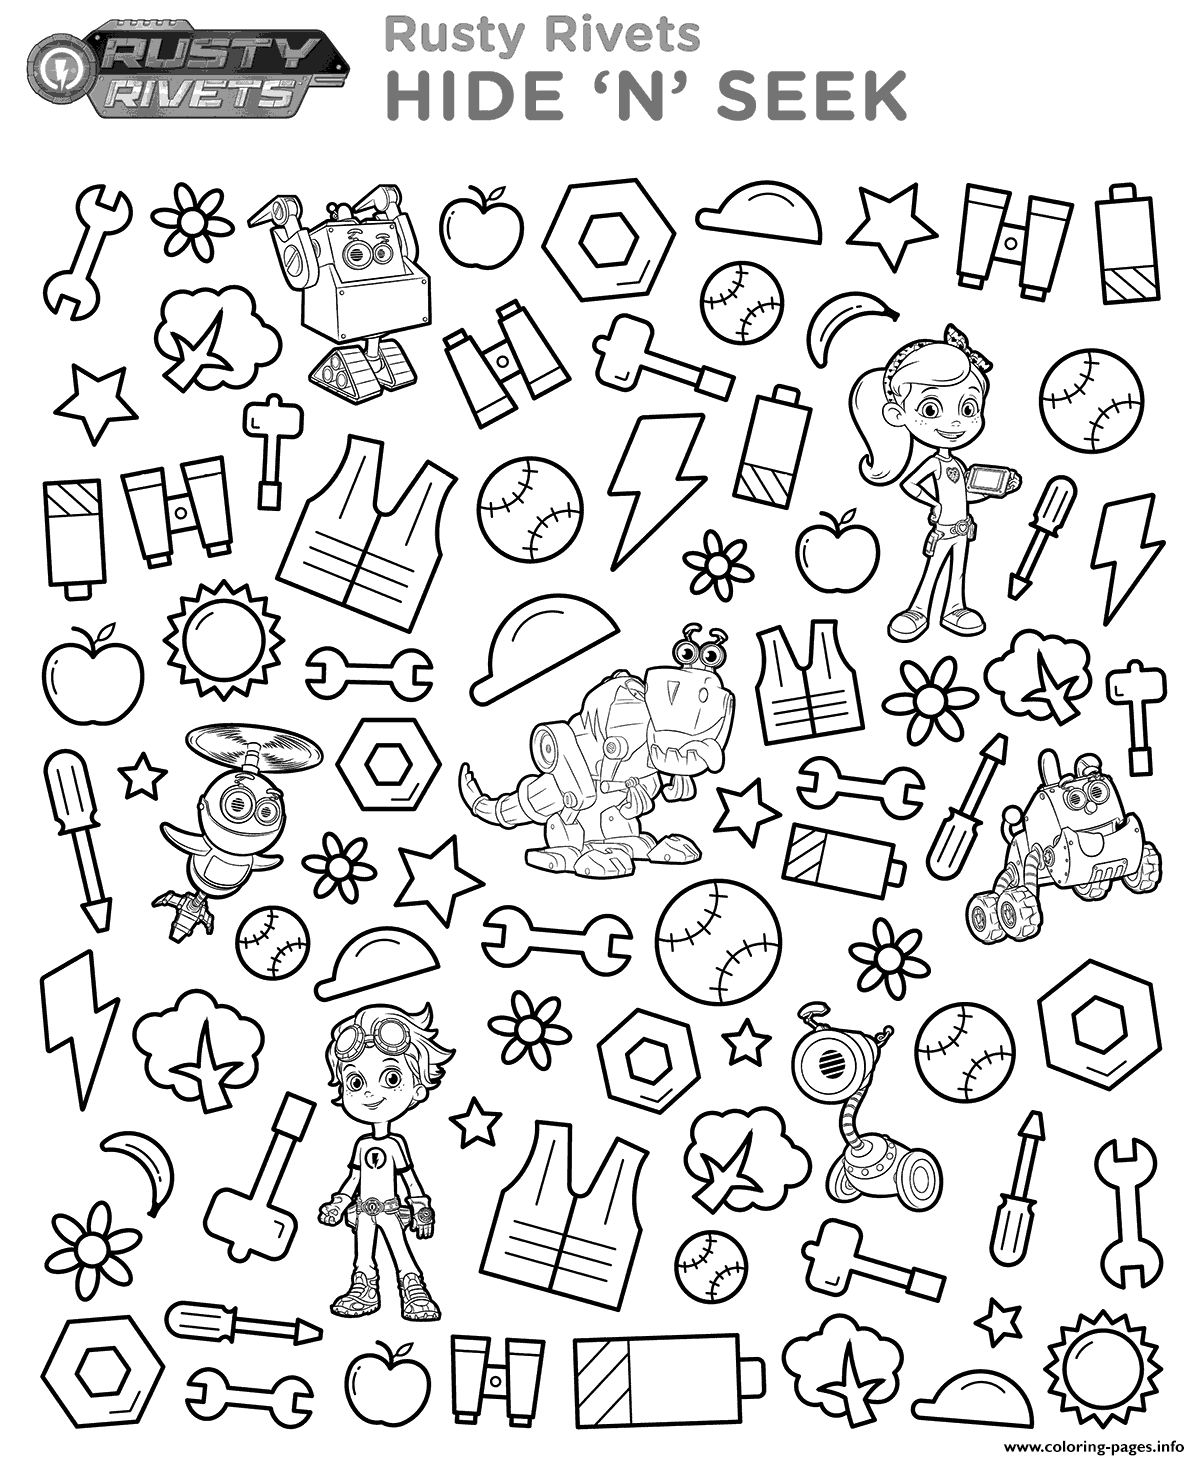 Rusty Rivets Hide And Seek coloring pages